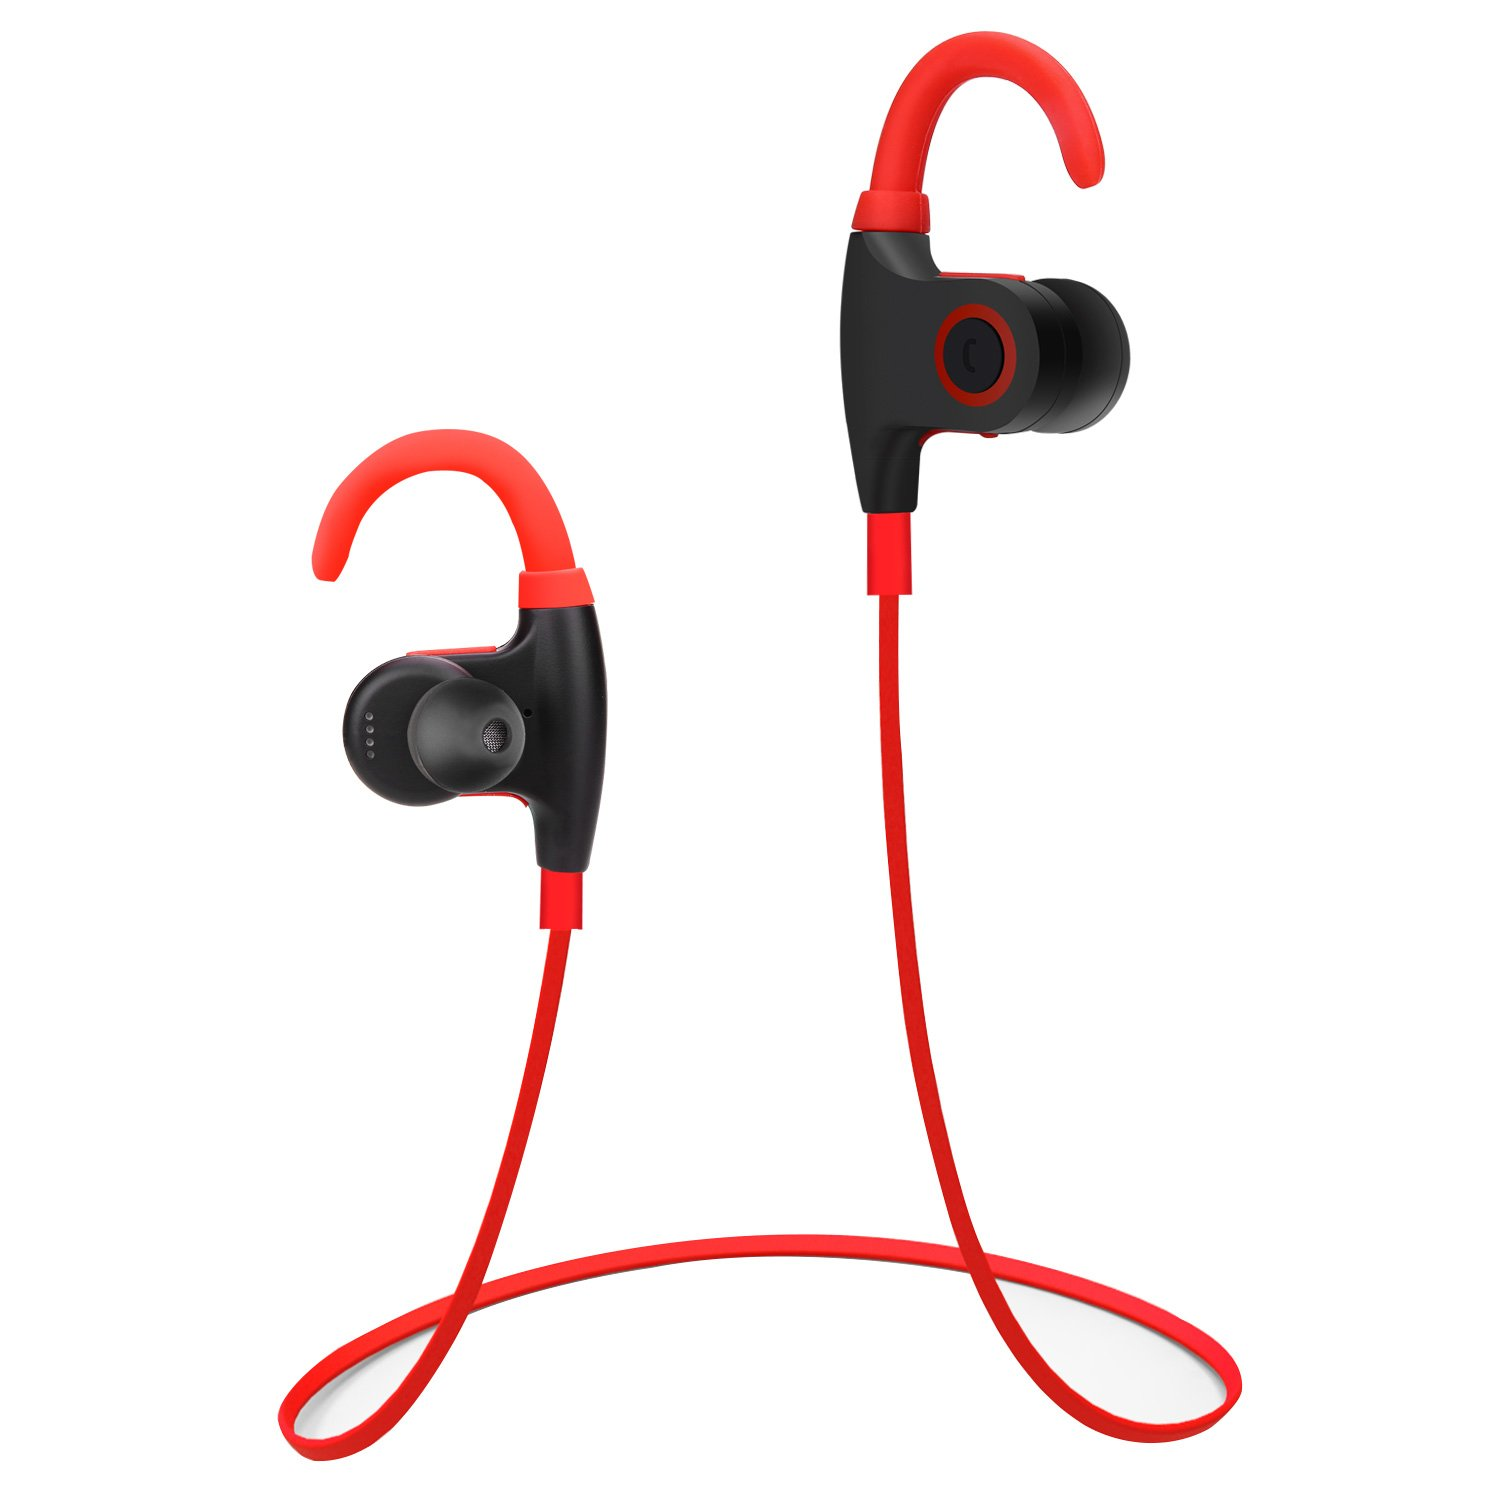 Bfox Bluetooth Headphones V41 Waterproof Bluetooth Earbuds For Gym  Exercise Wireless Headphones In Ear Sport Bluetooth Headsetfortable For